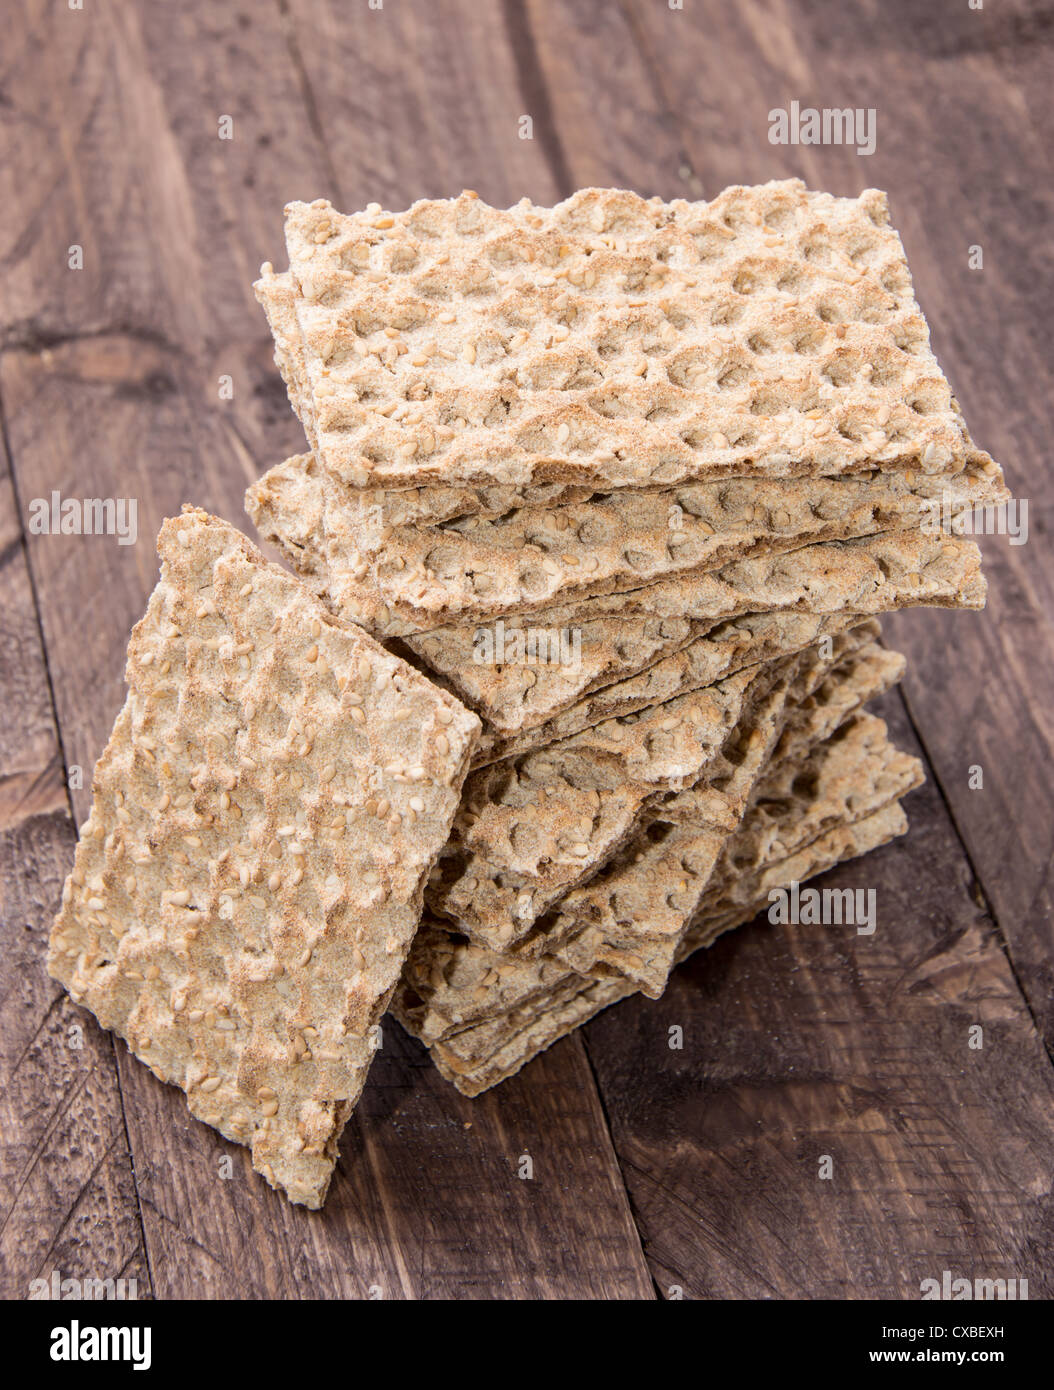 Stacked Crispbread on wooden background - Stock Image